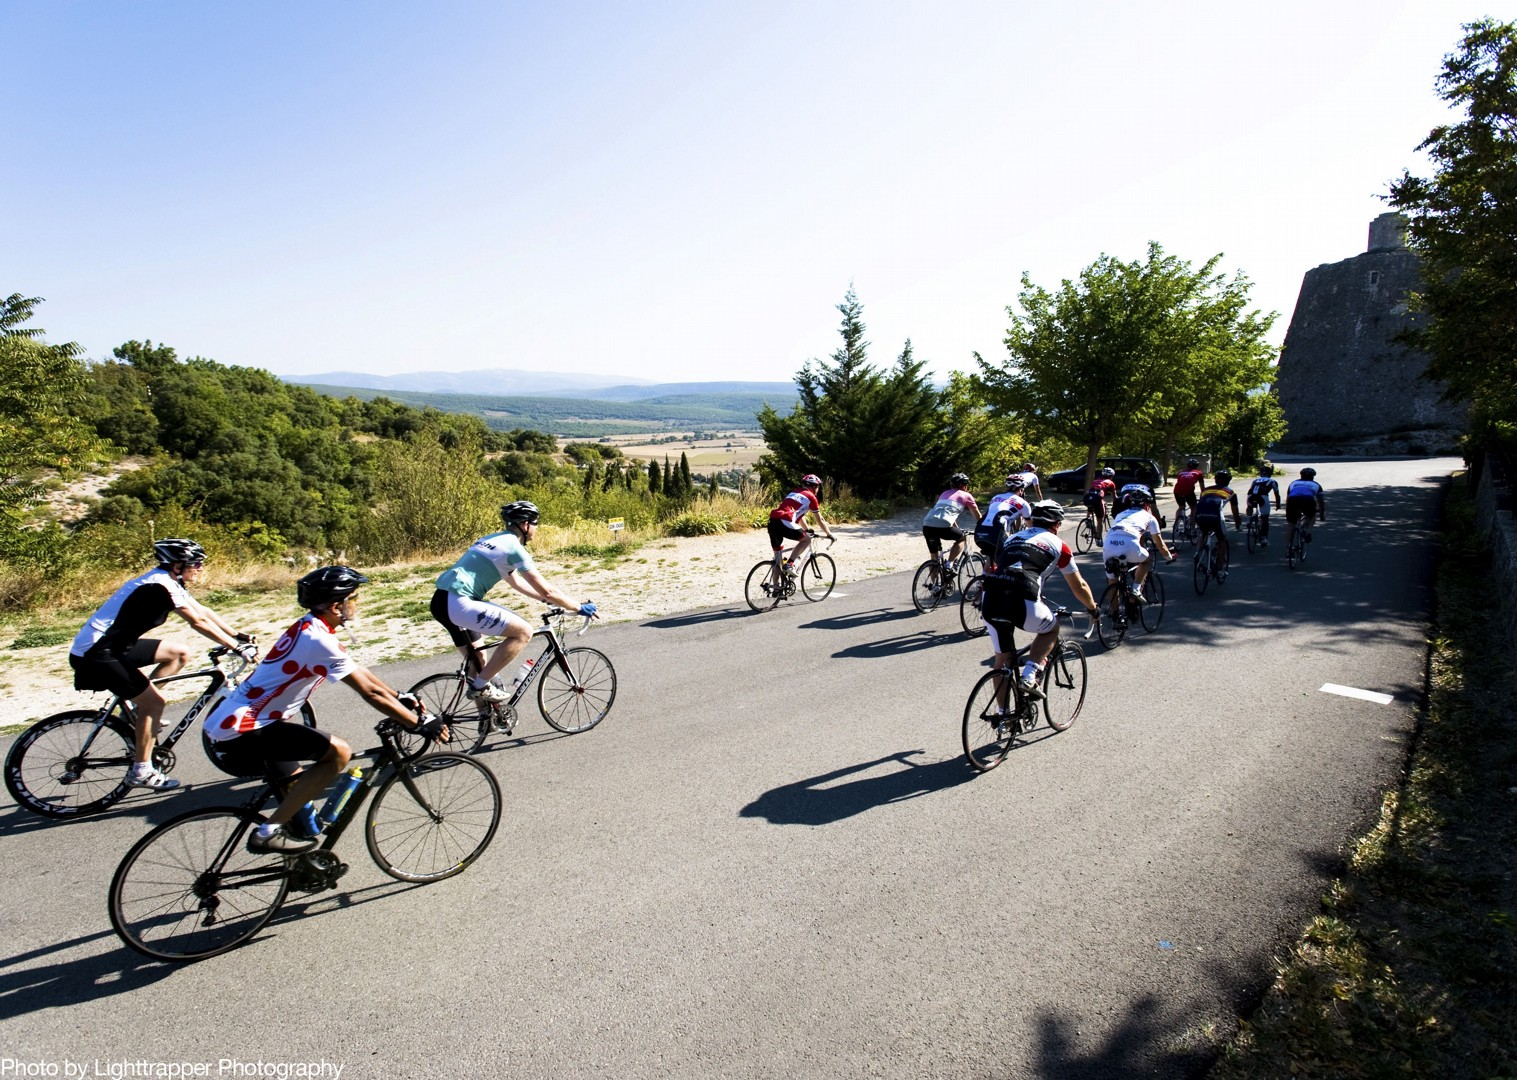 group-road-coastal-cycling-provence-france.jpg - France - Provence - Le Ventoux a Velo - Guided Road Cycling Holiday - Road Cycling